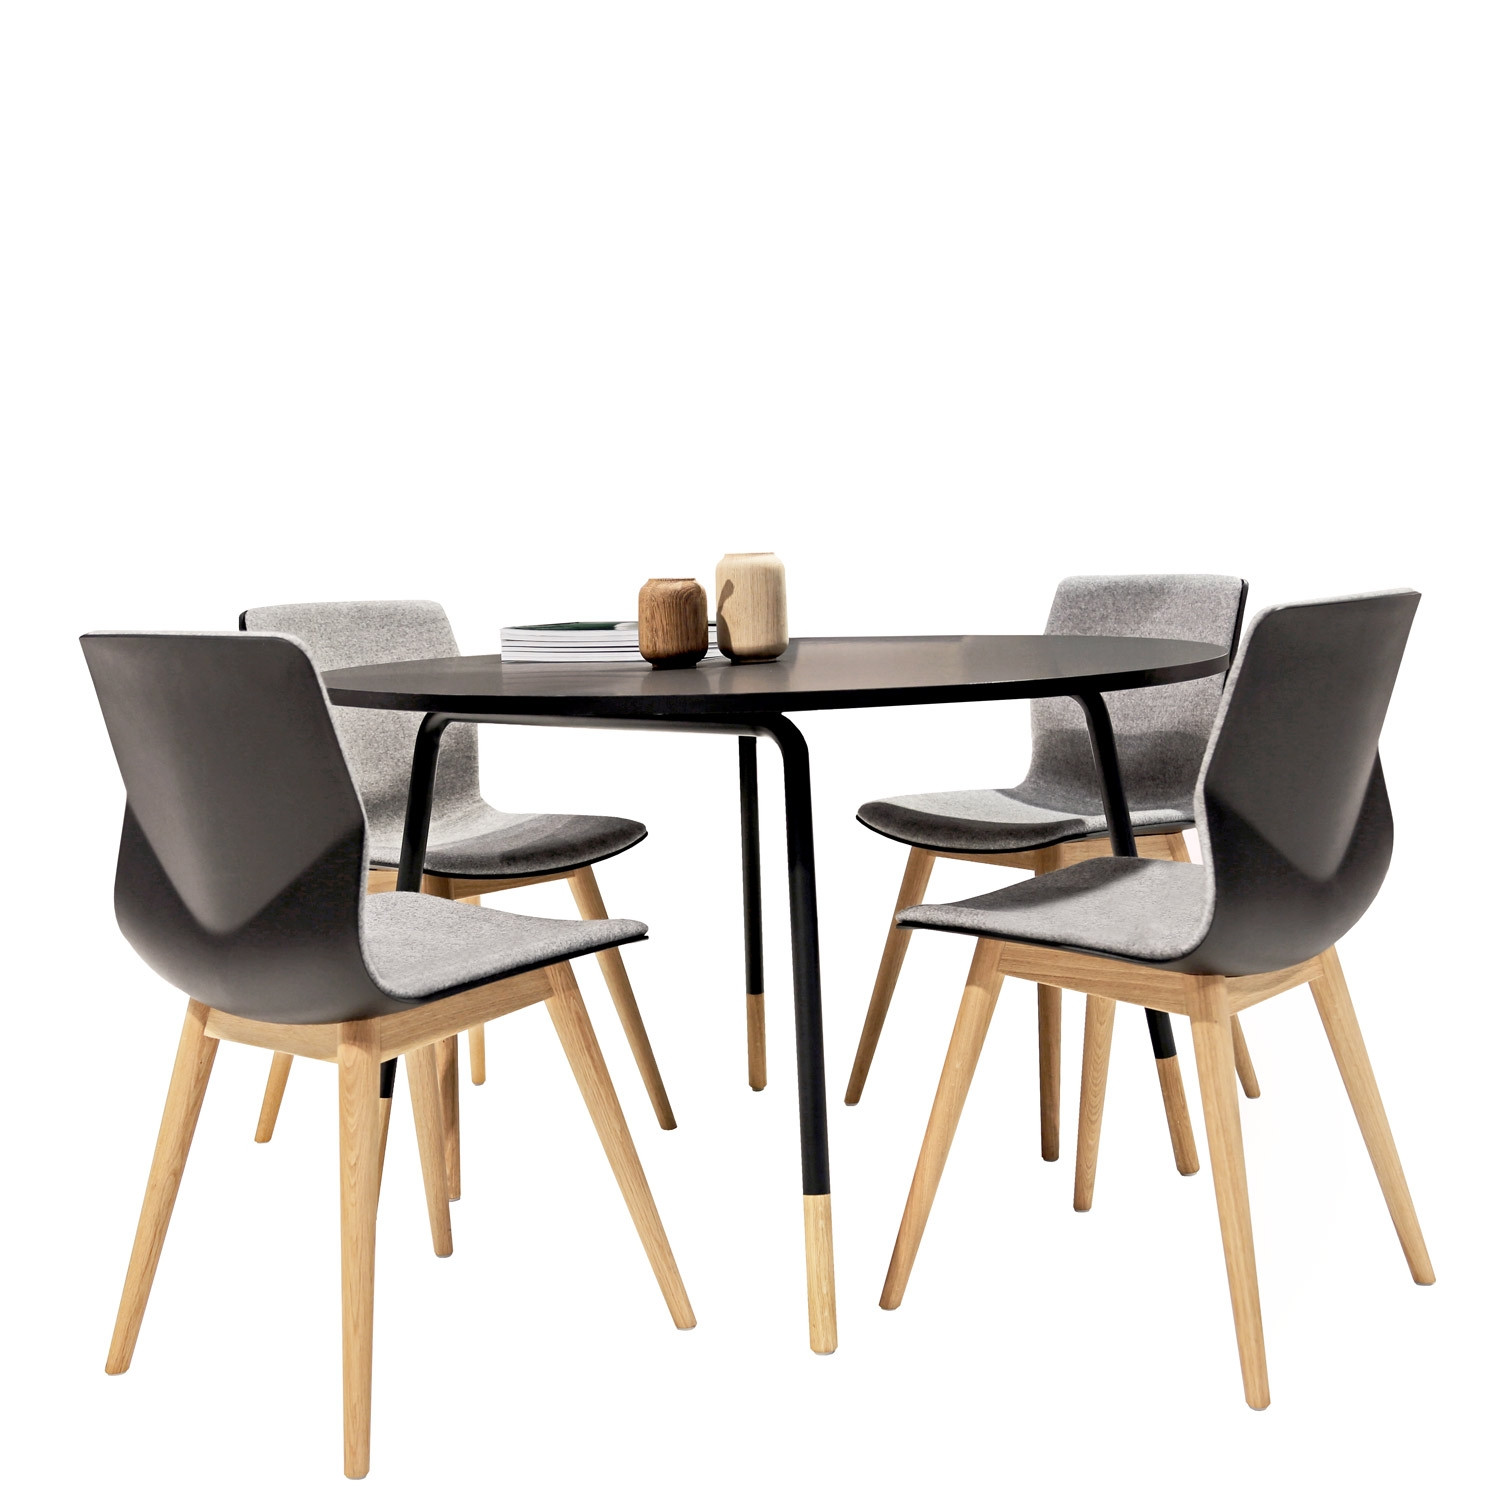 Four®Sure Wood Chairs